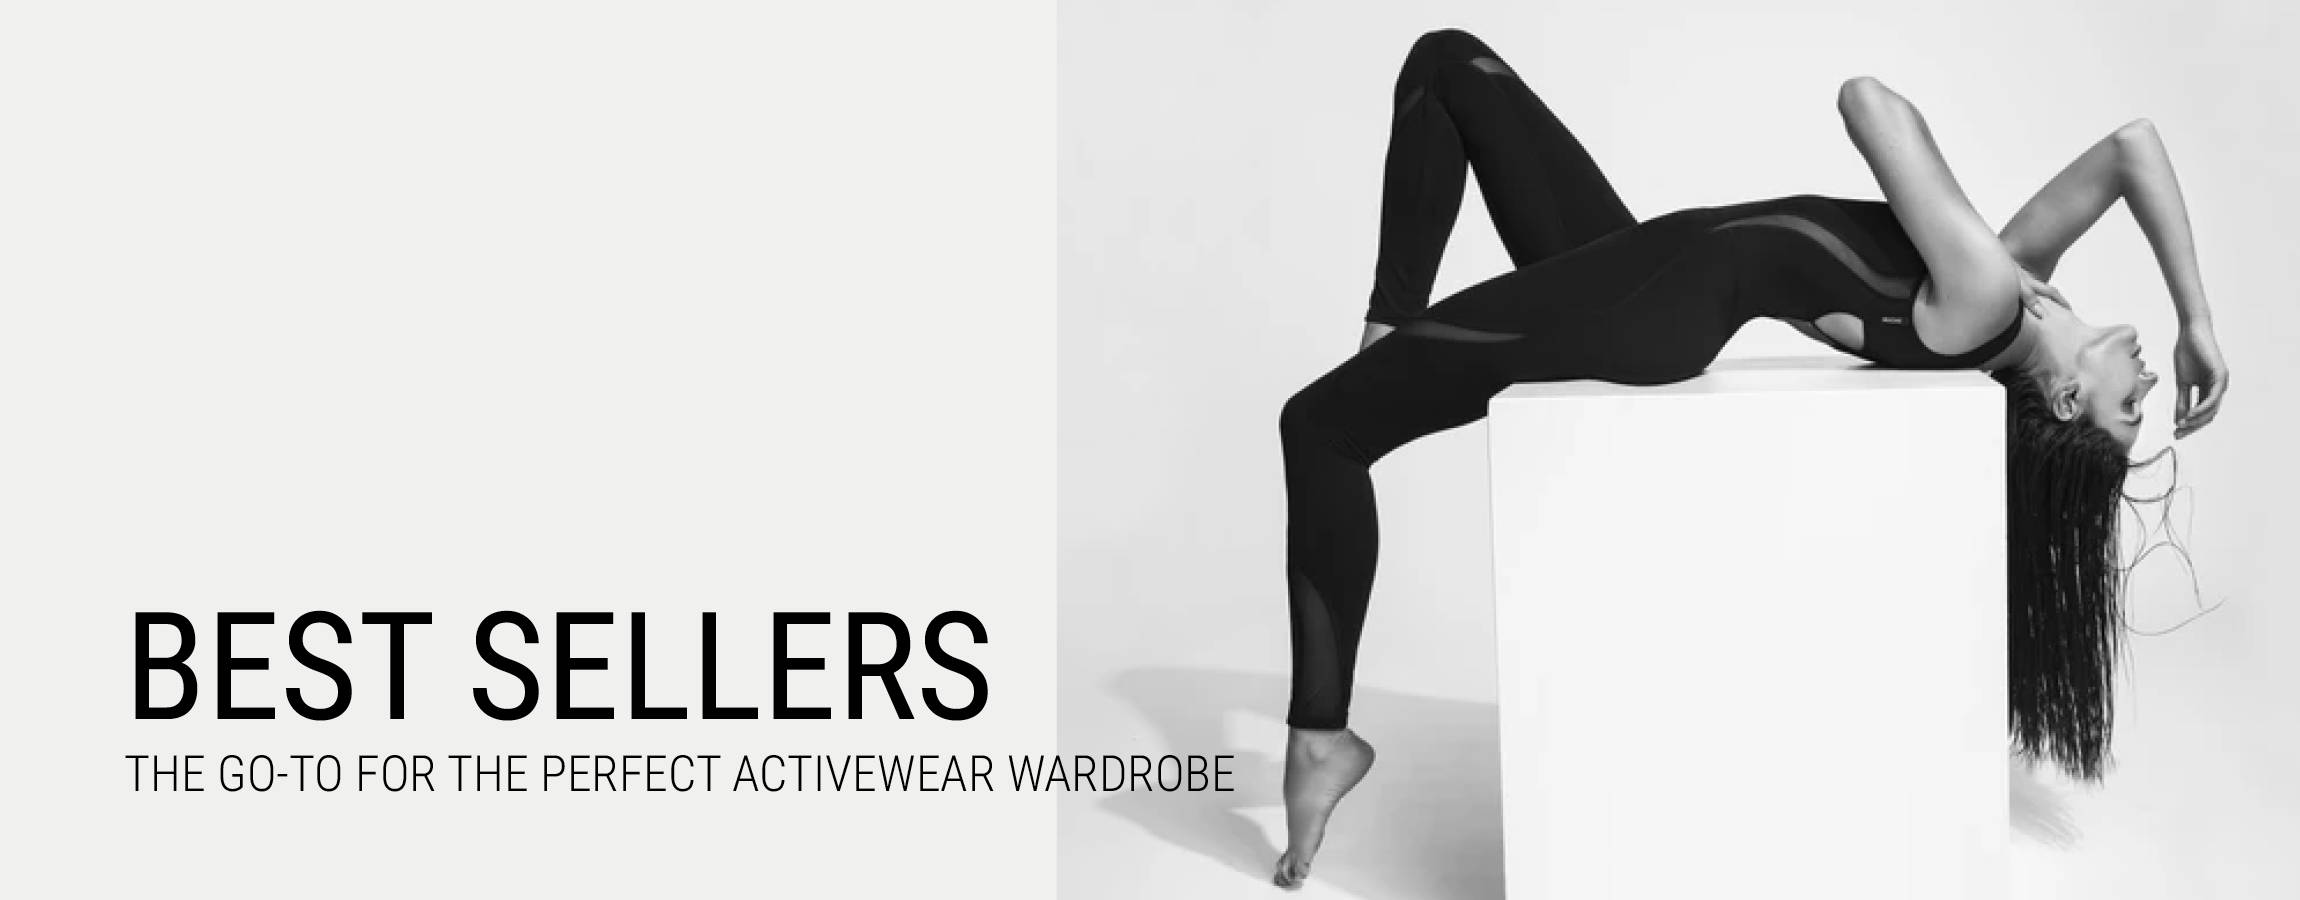 Shop Online Activewear Women Best Sellers